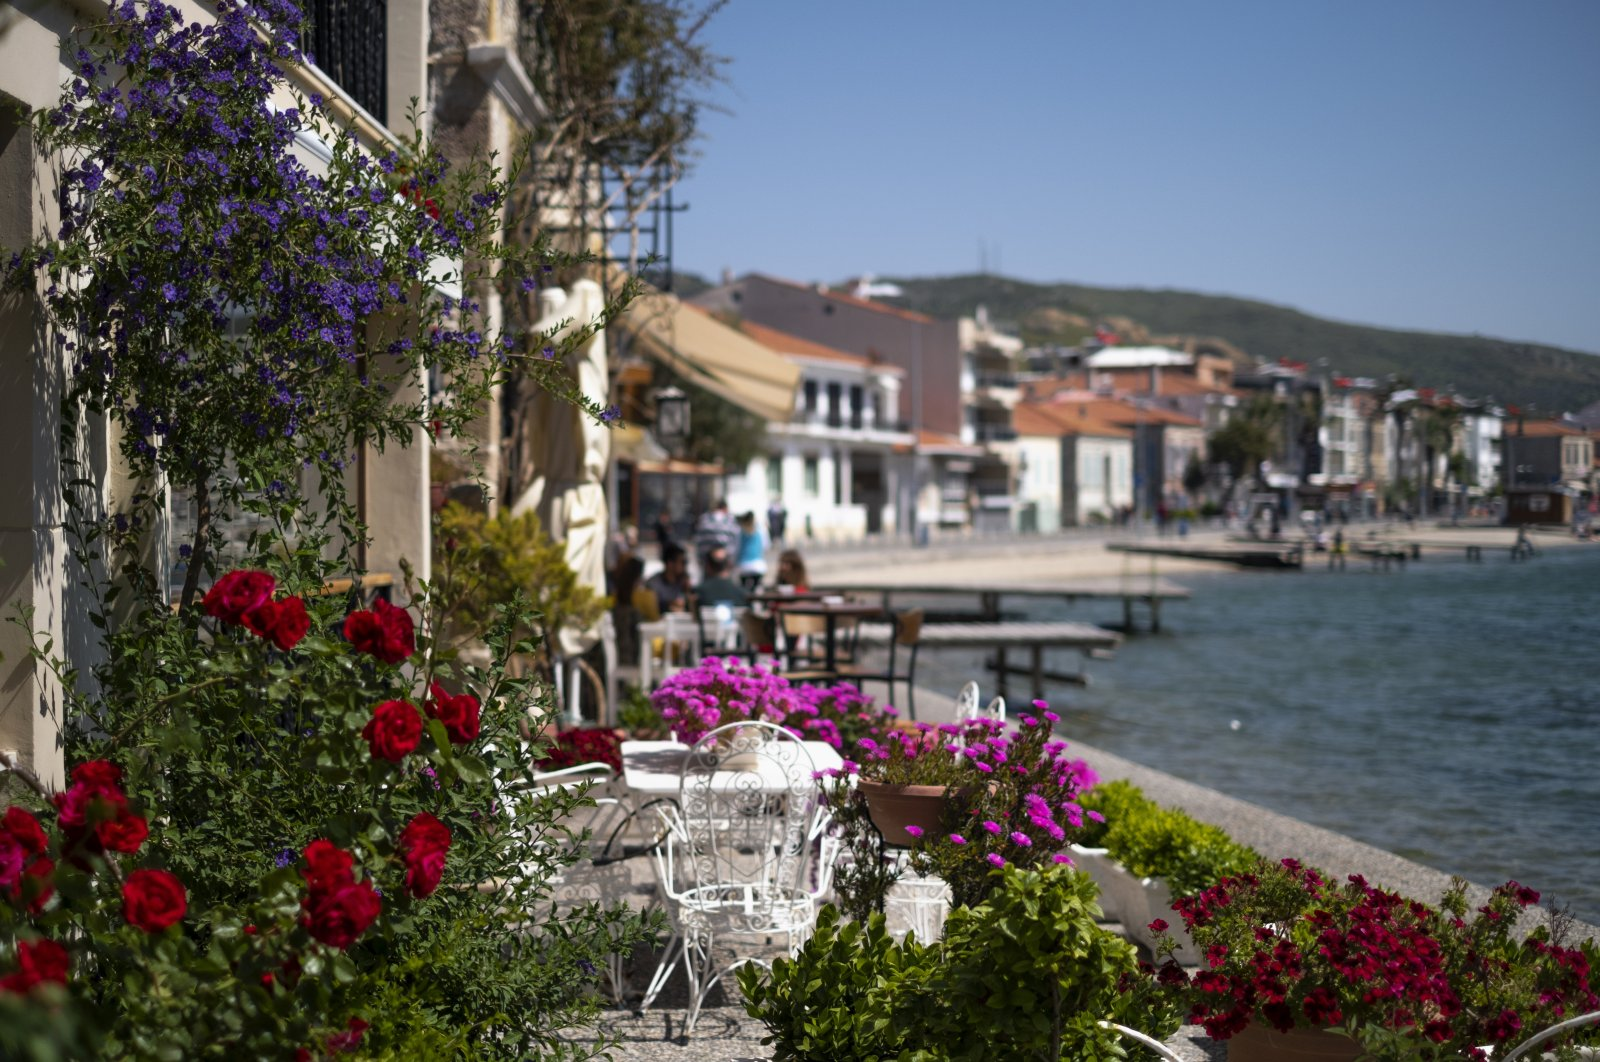 This undated file photo shows a cafe's garden full of flowers in the coastal district of Foça in Izmir, western Turkey. (iStock Photo)